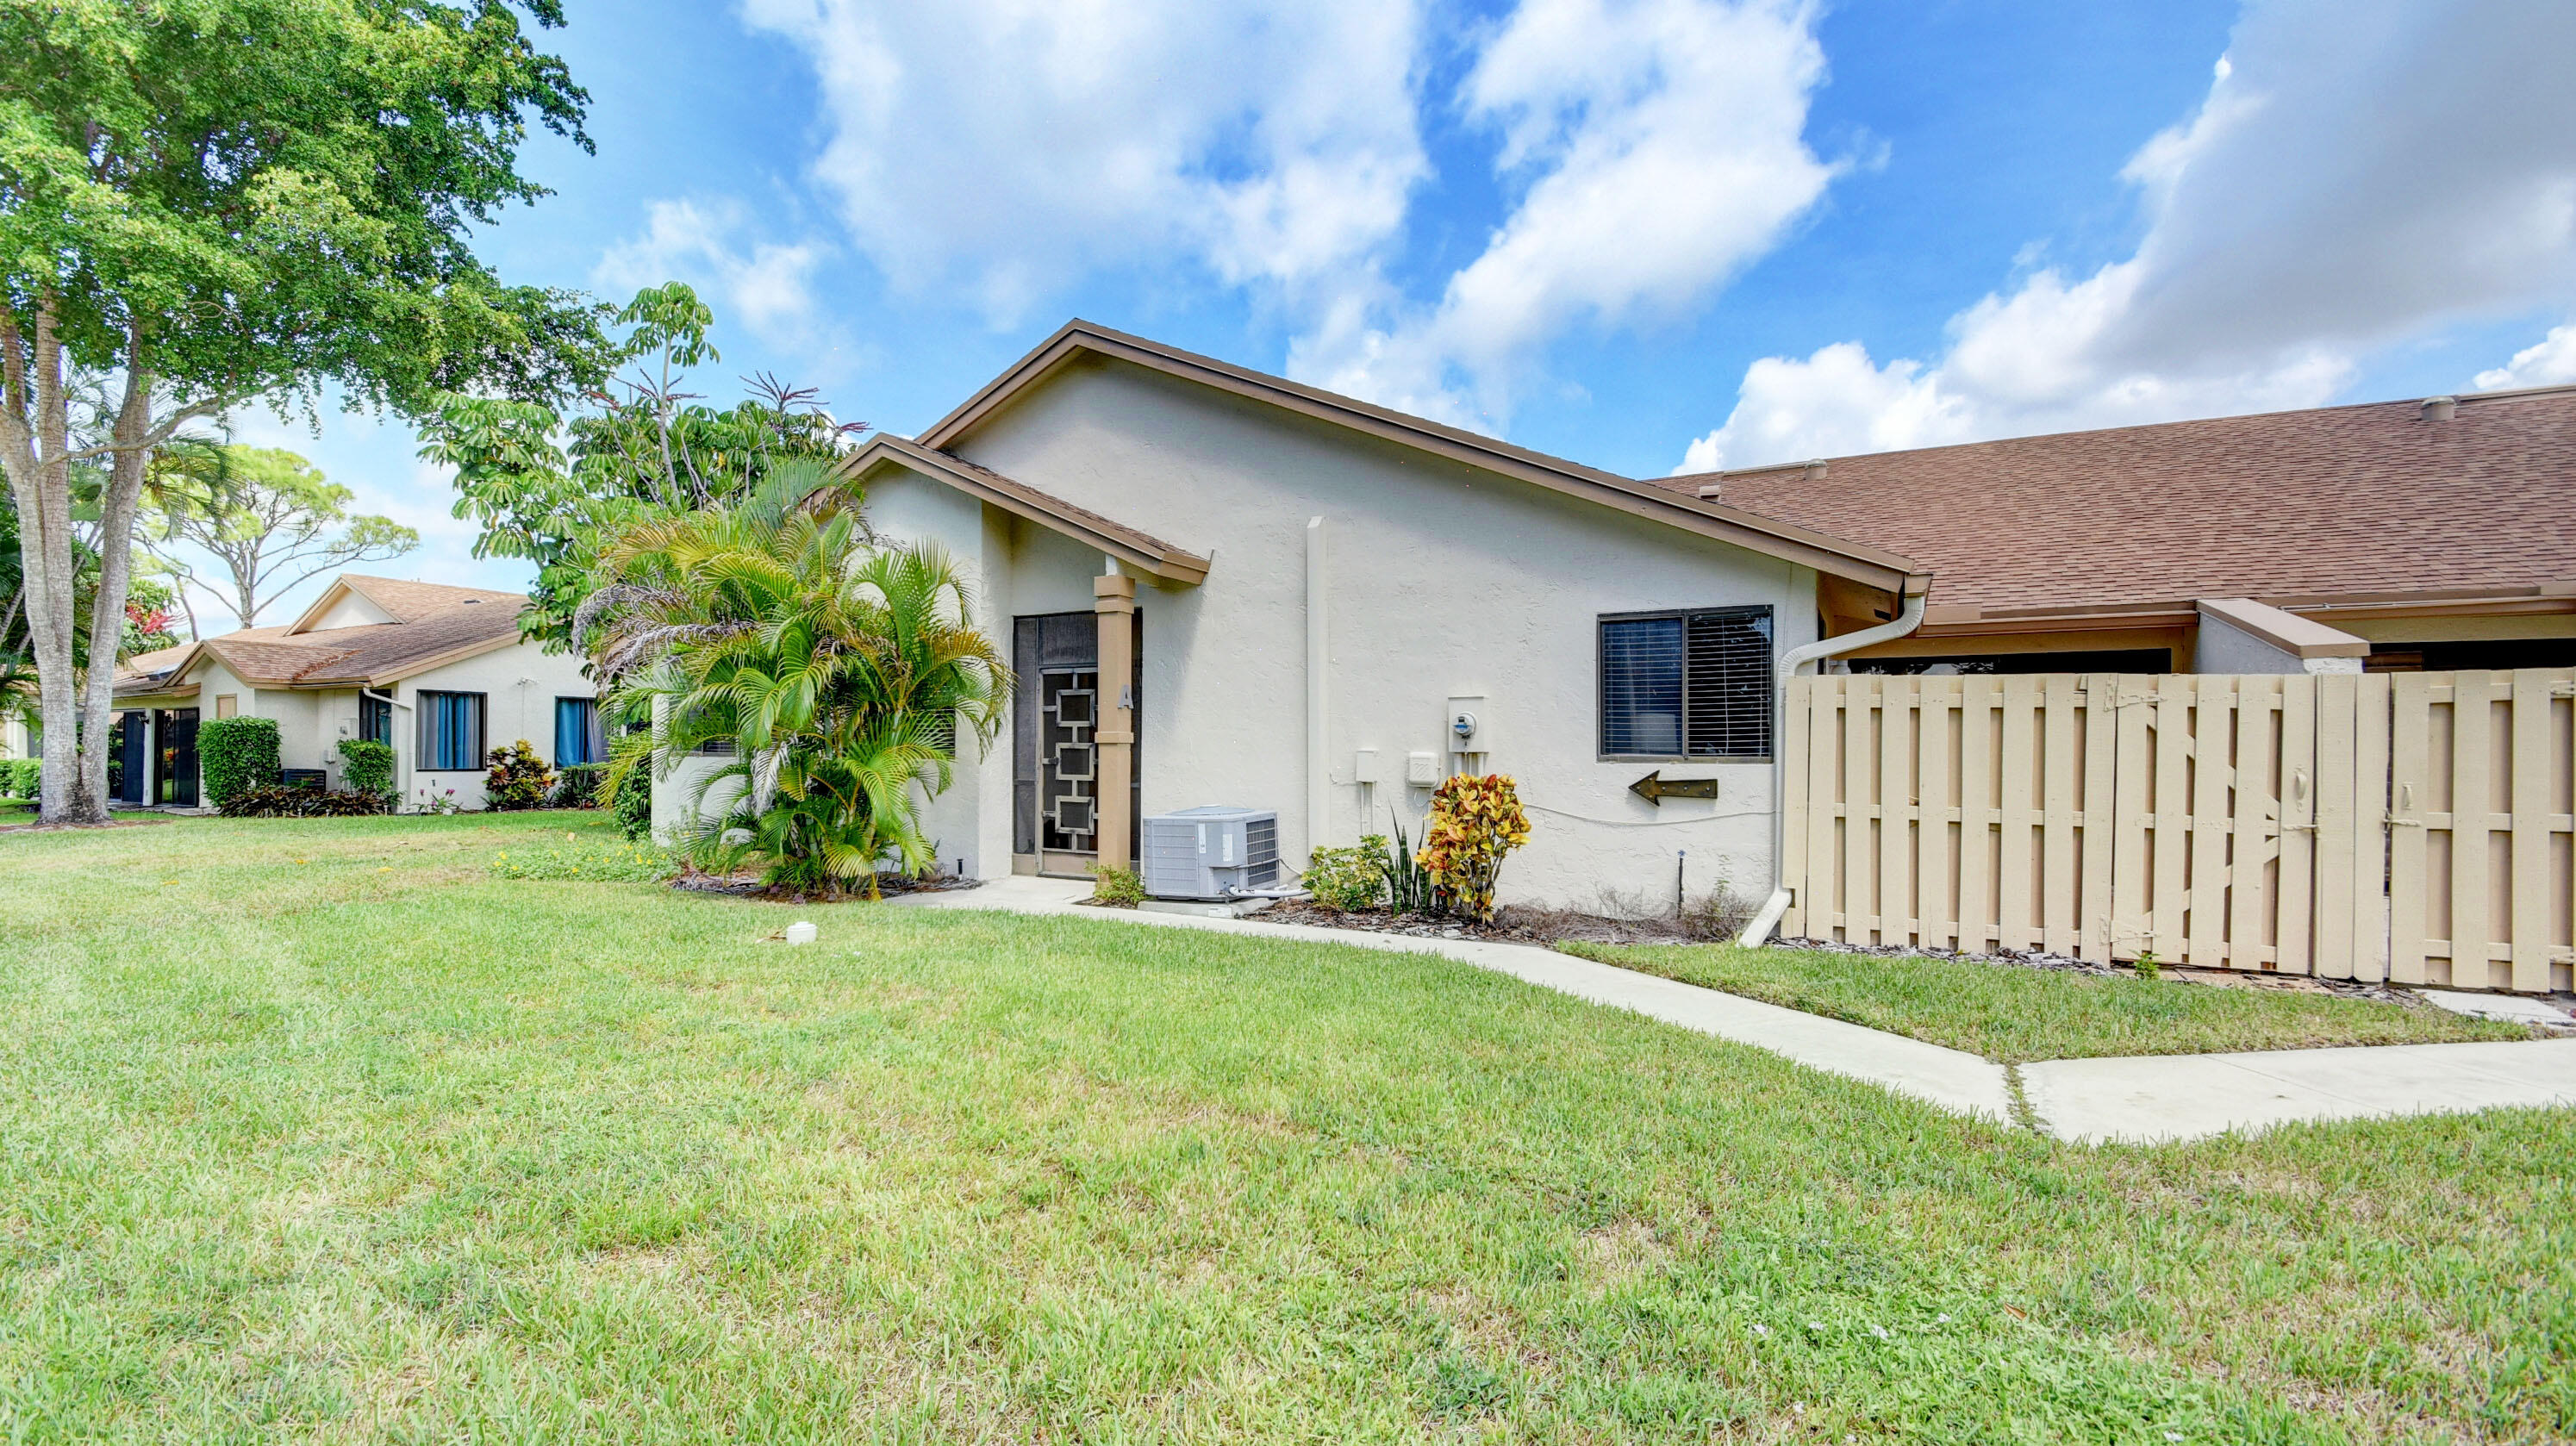 1300  Nw 29th Avenue  A For Sale 10746230, FL